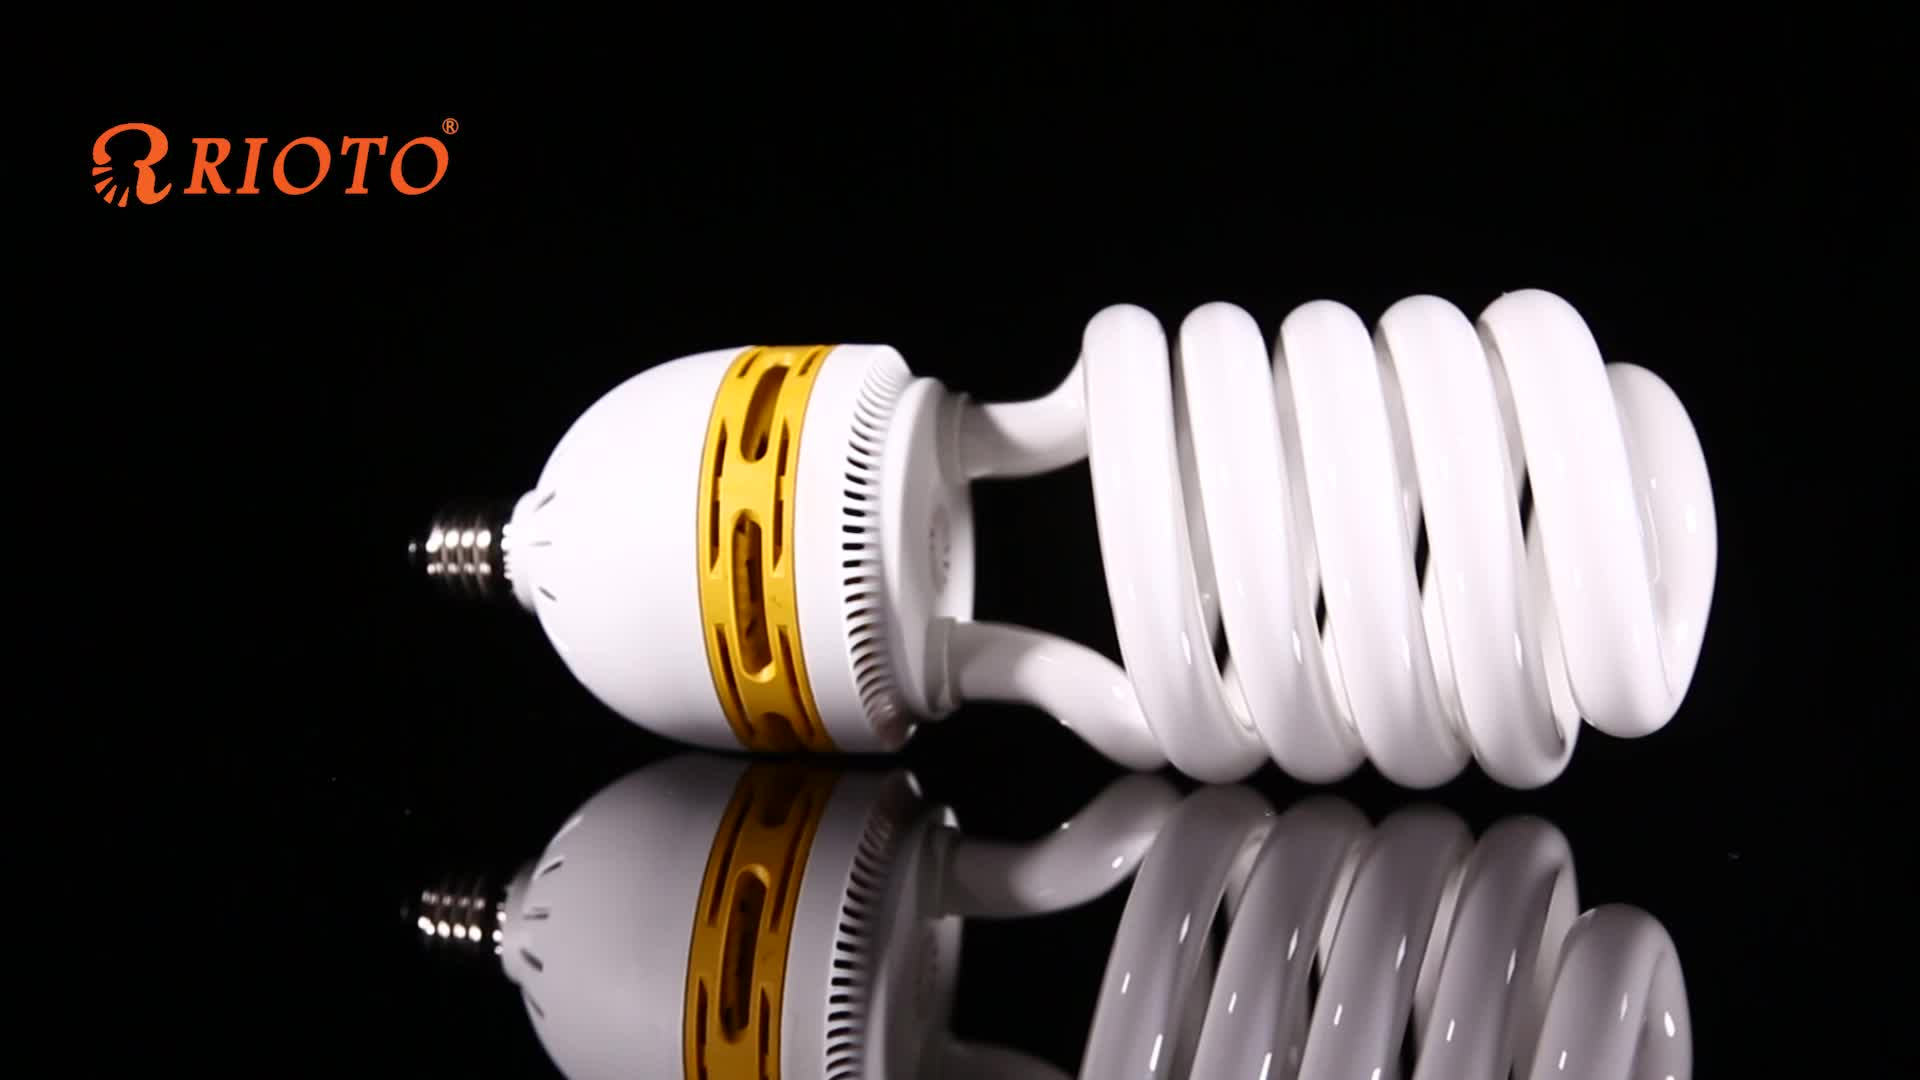 U type, spiral type, lotus type Energy saving CFL bulbs economic cheap price fluorescent bulb lamp e27 b22 e14 saving cfl lamp